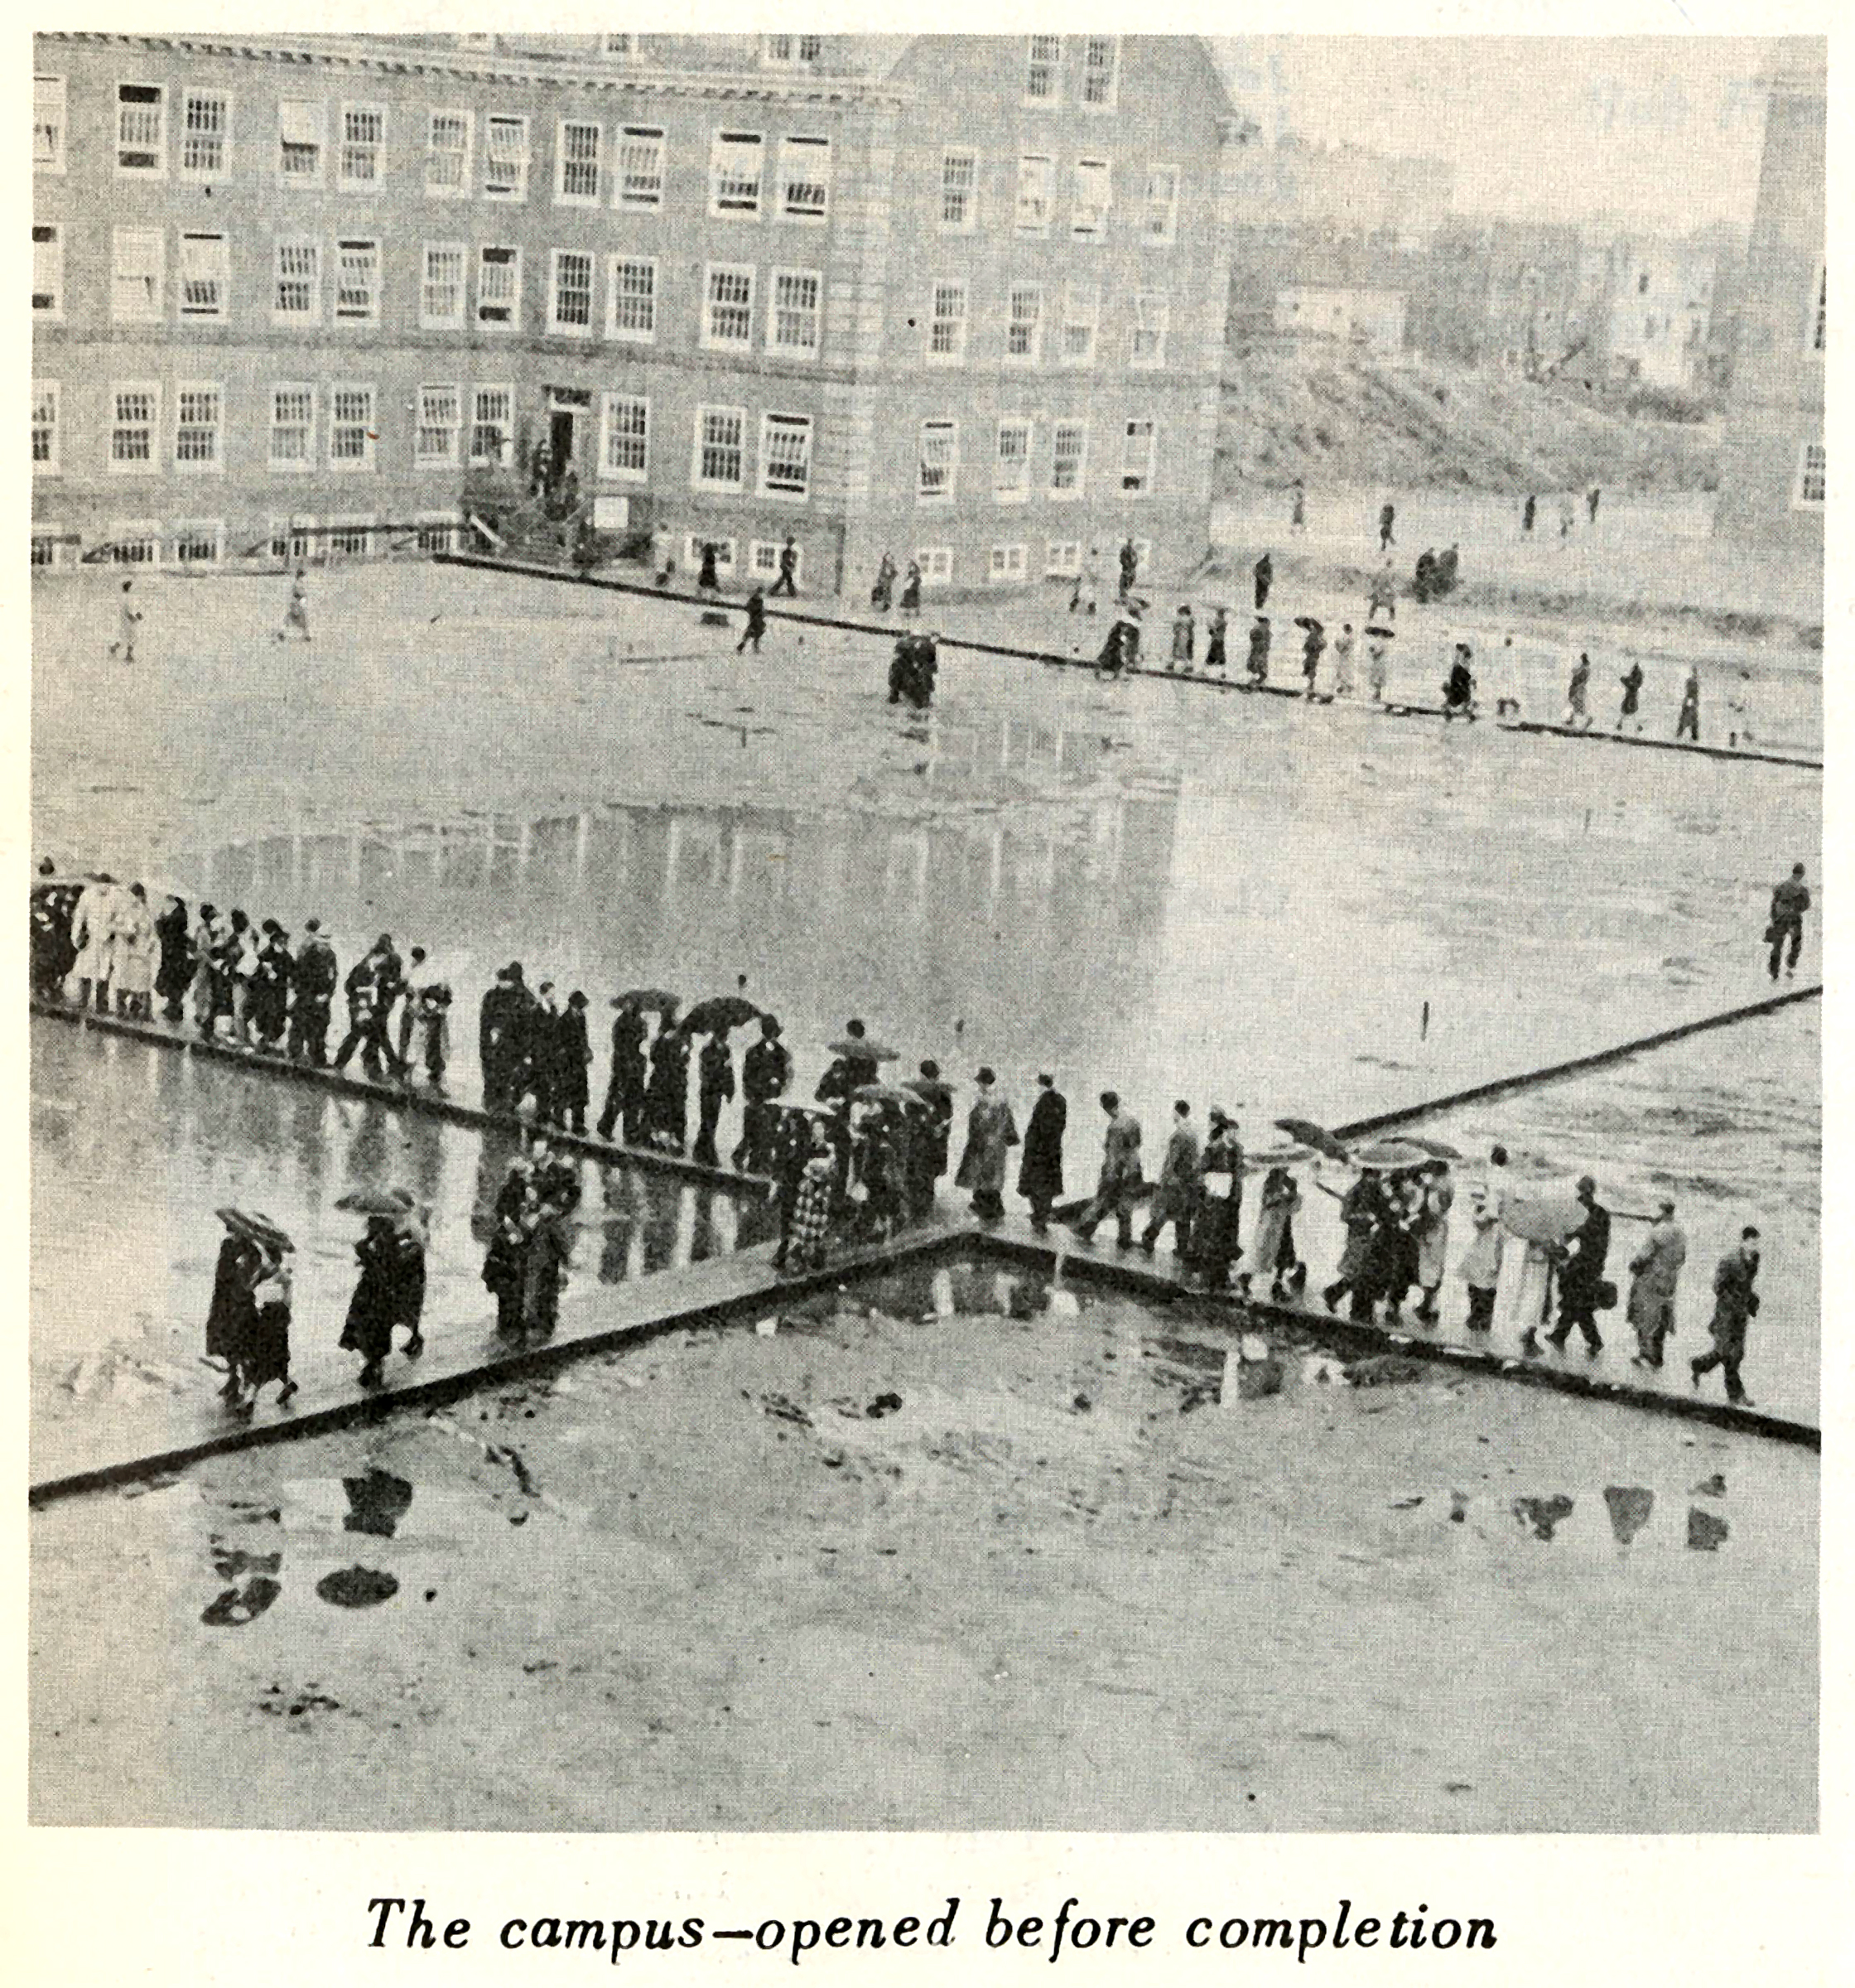 Brooklyn College Campus Opened Before Completion, 1935-1937